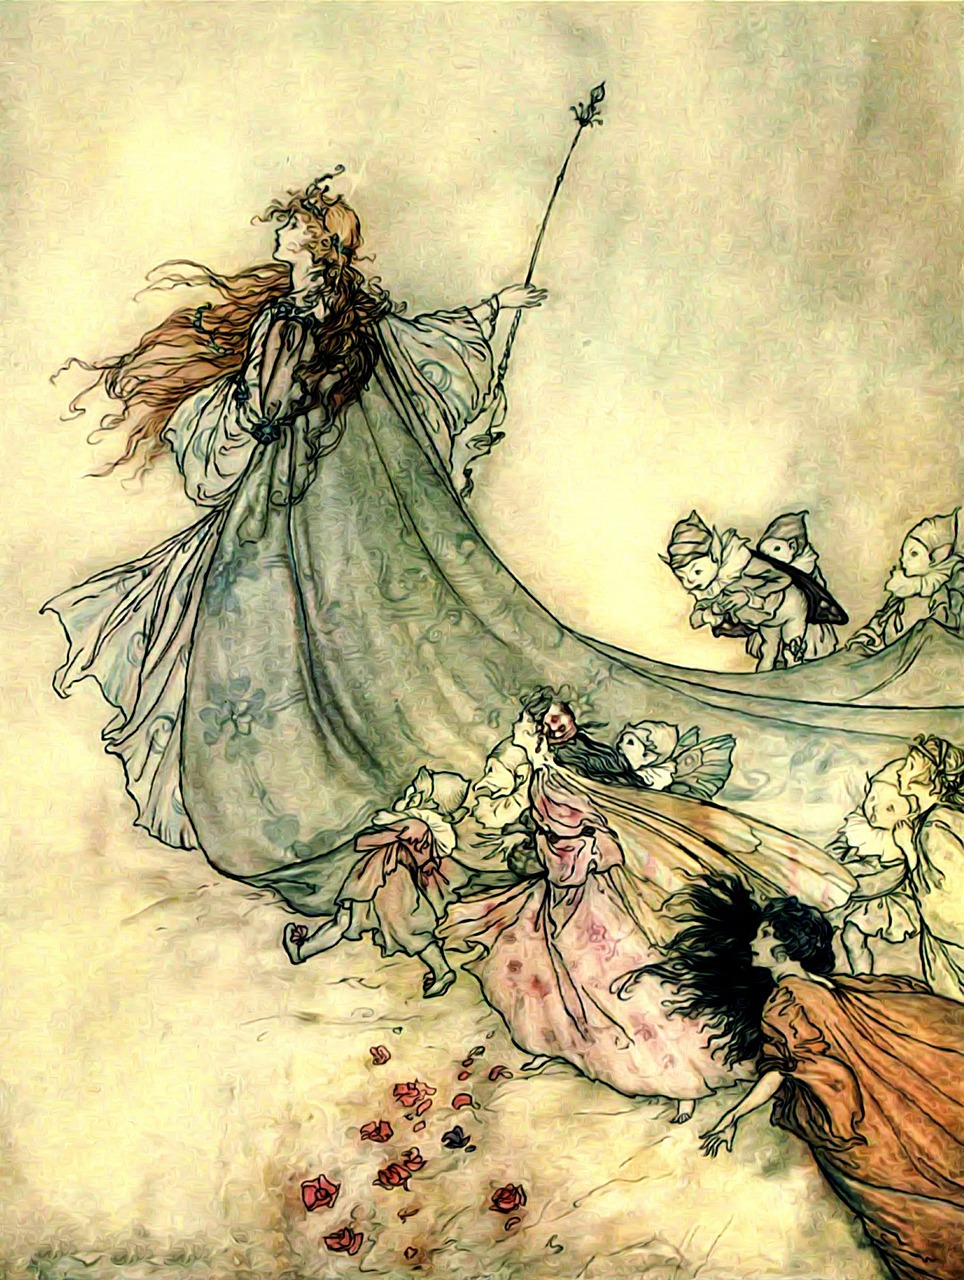 illustration of queen mab? leading fairies and pixies away